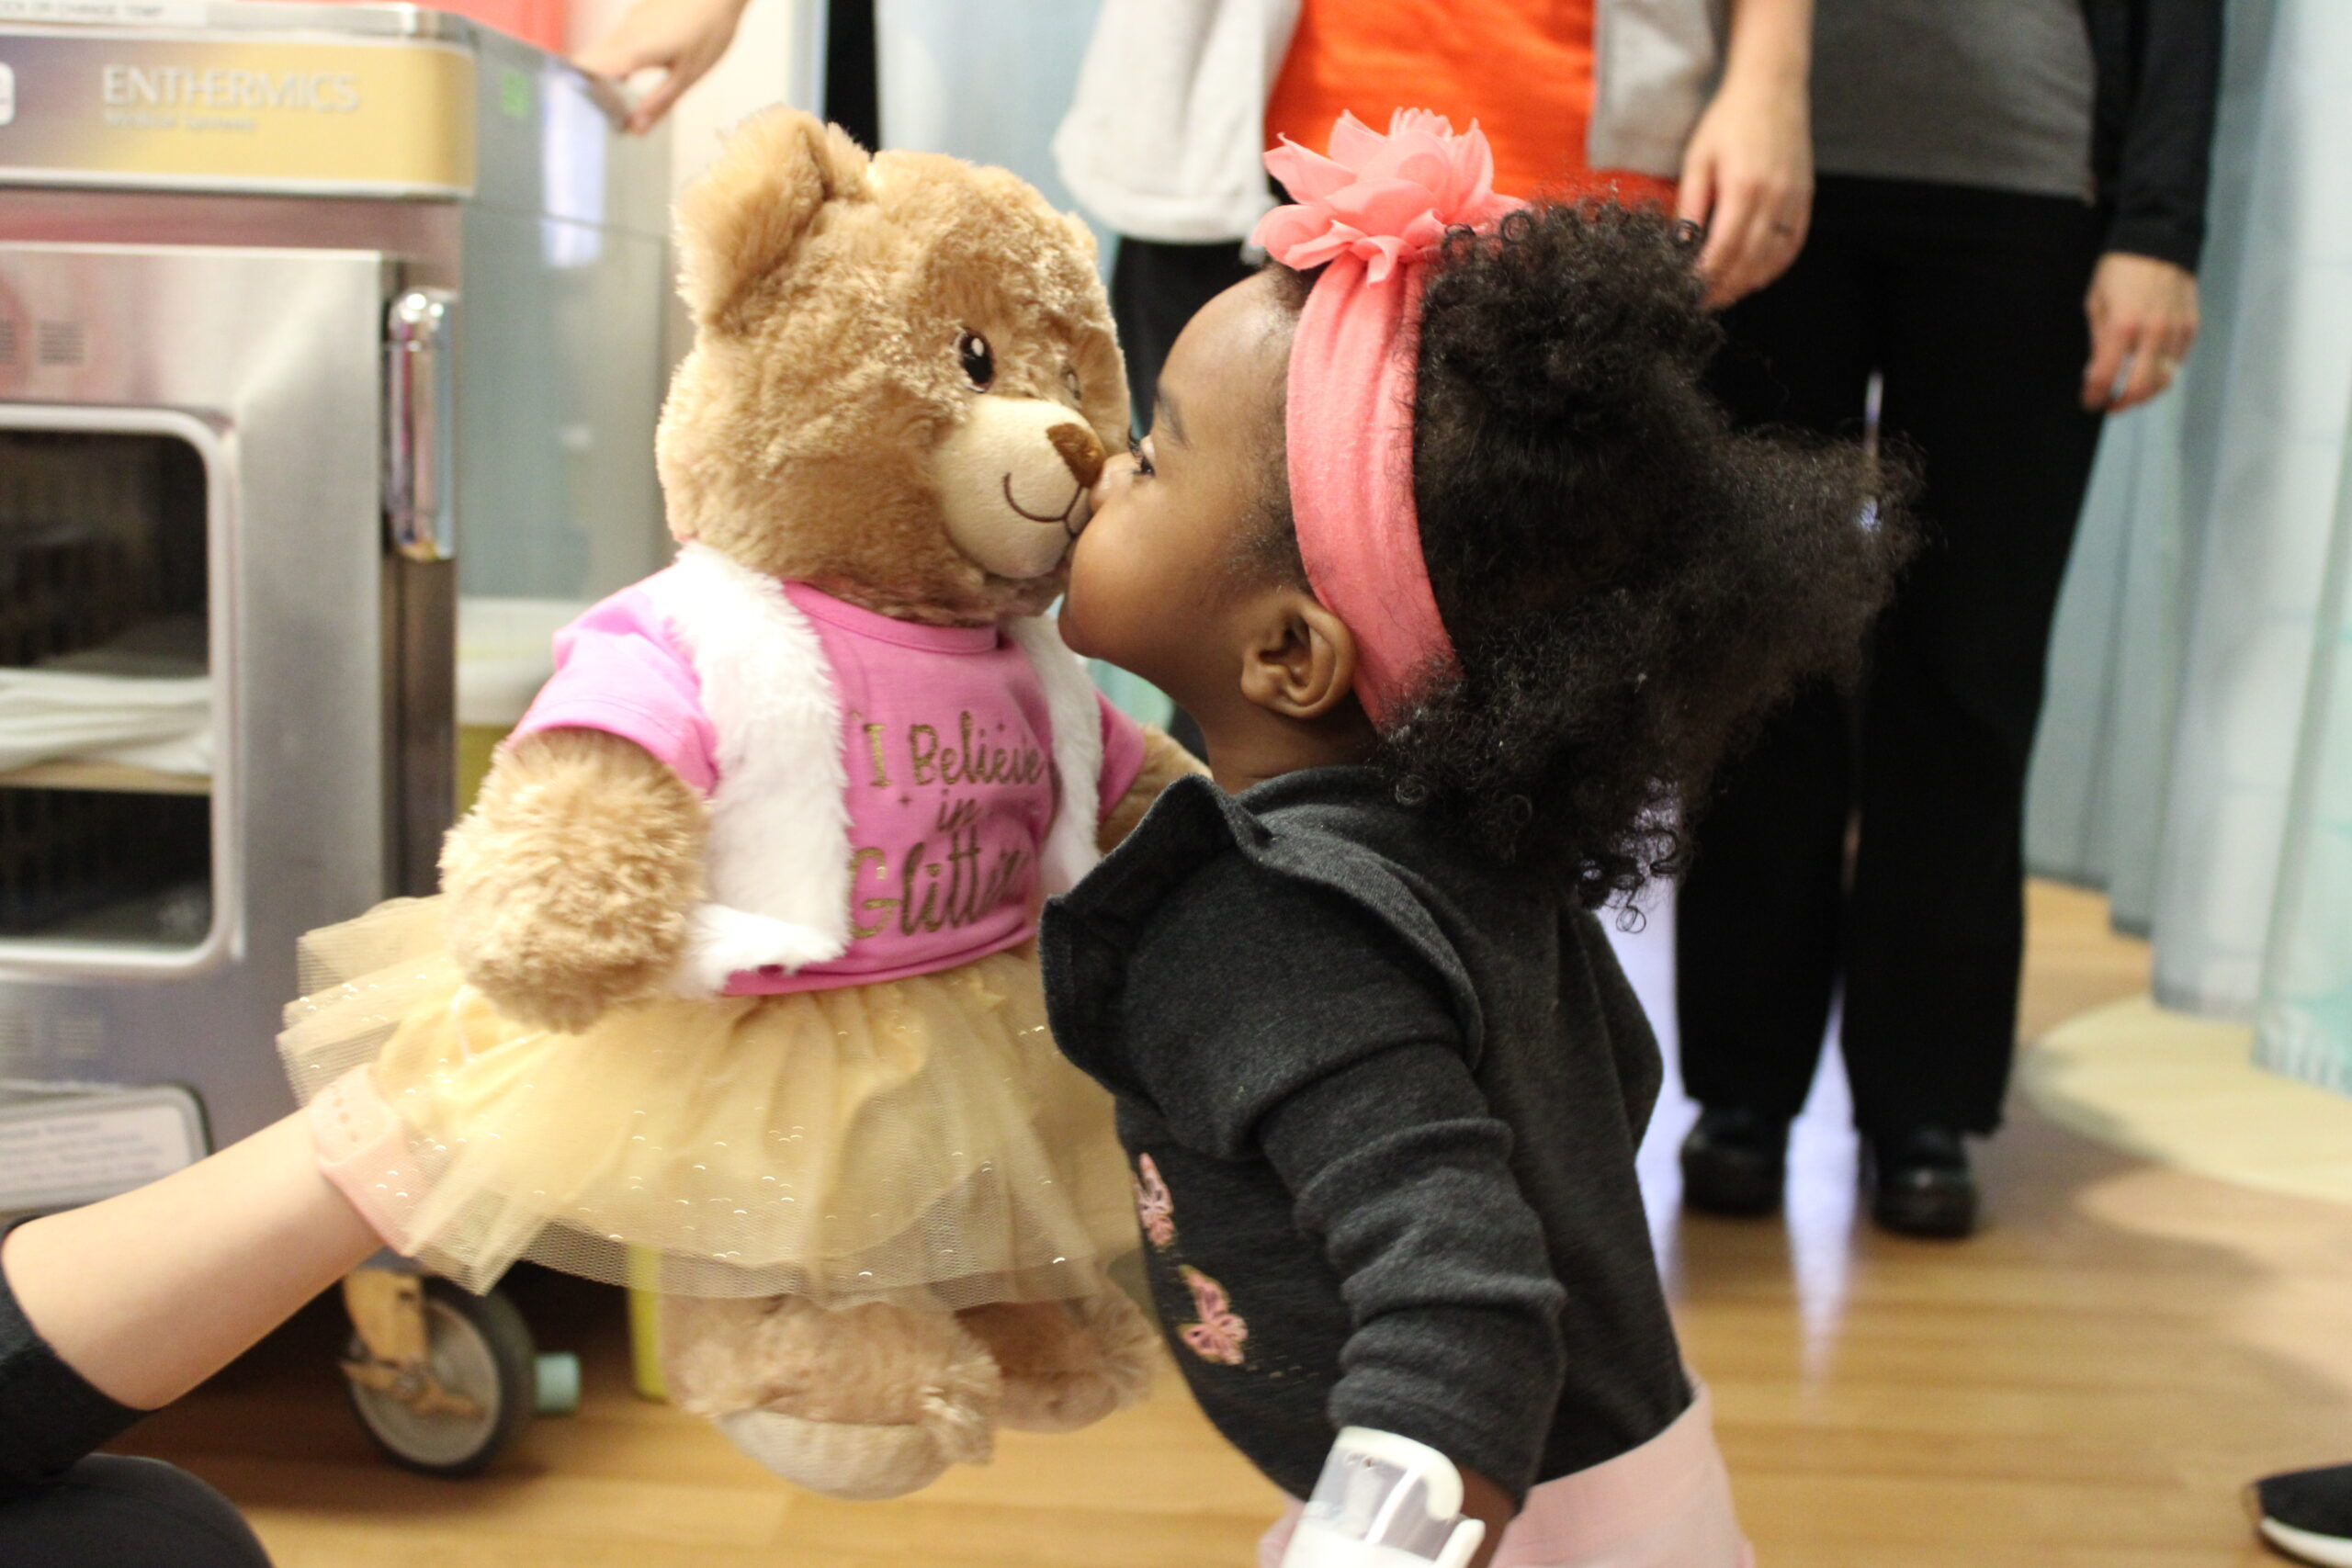 Delivering Build-A-Bears and smiles to kids who need them more now than ever